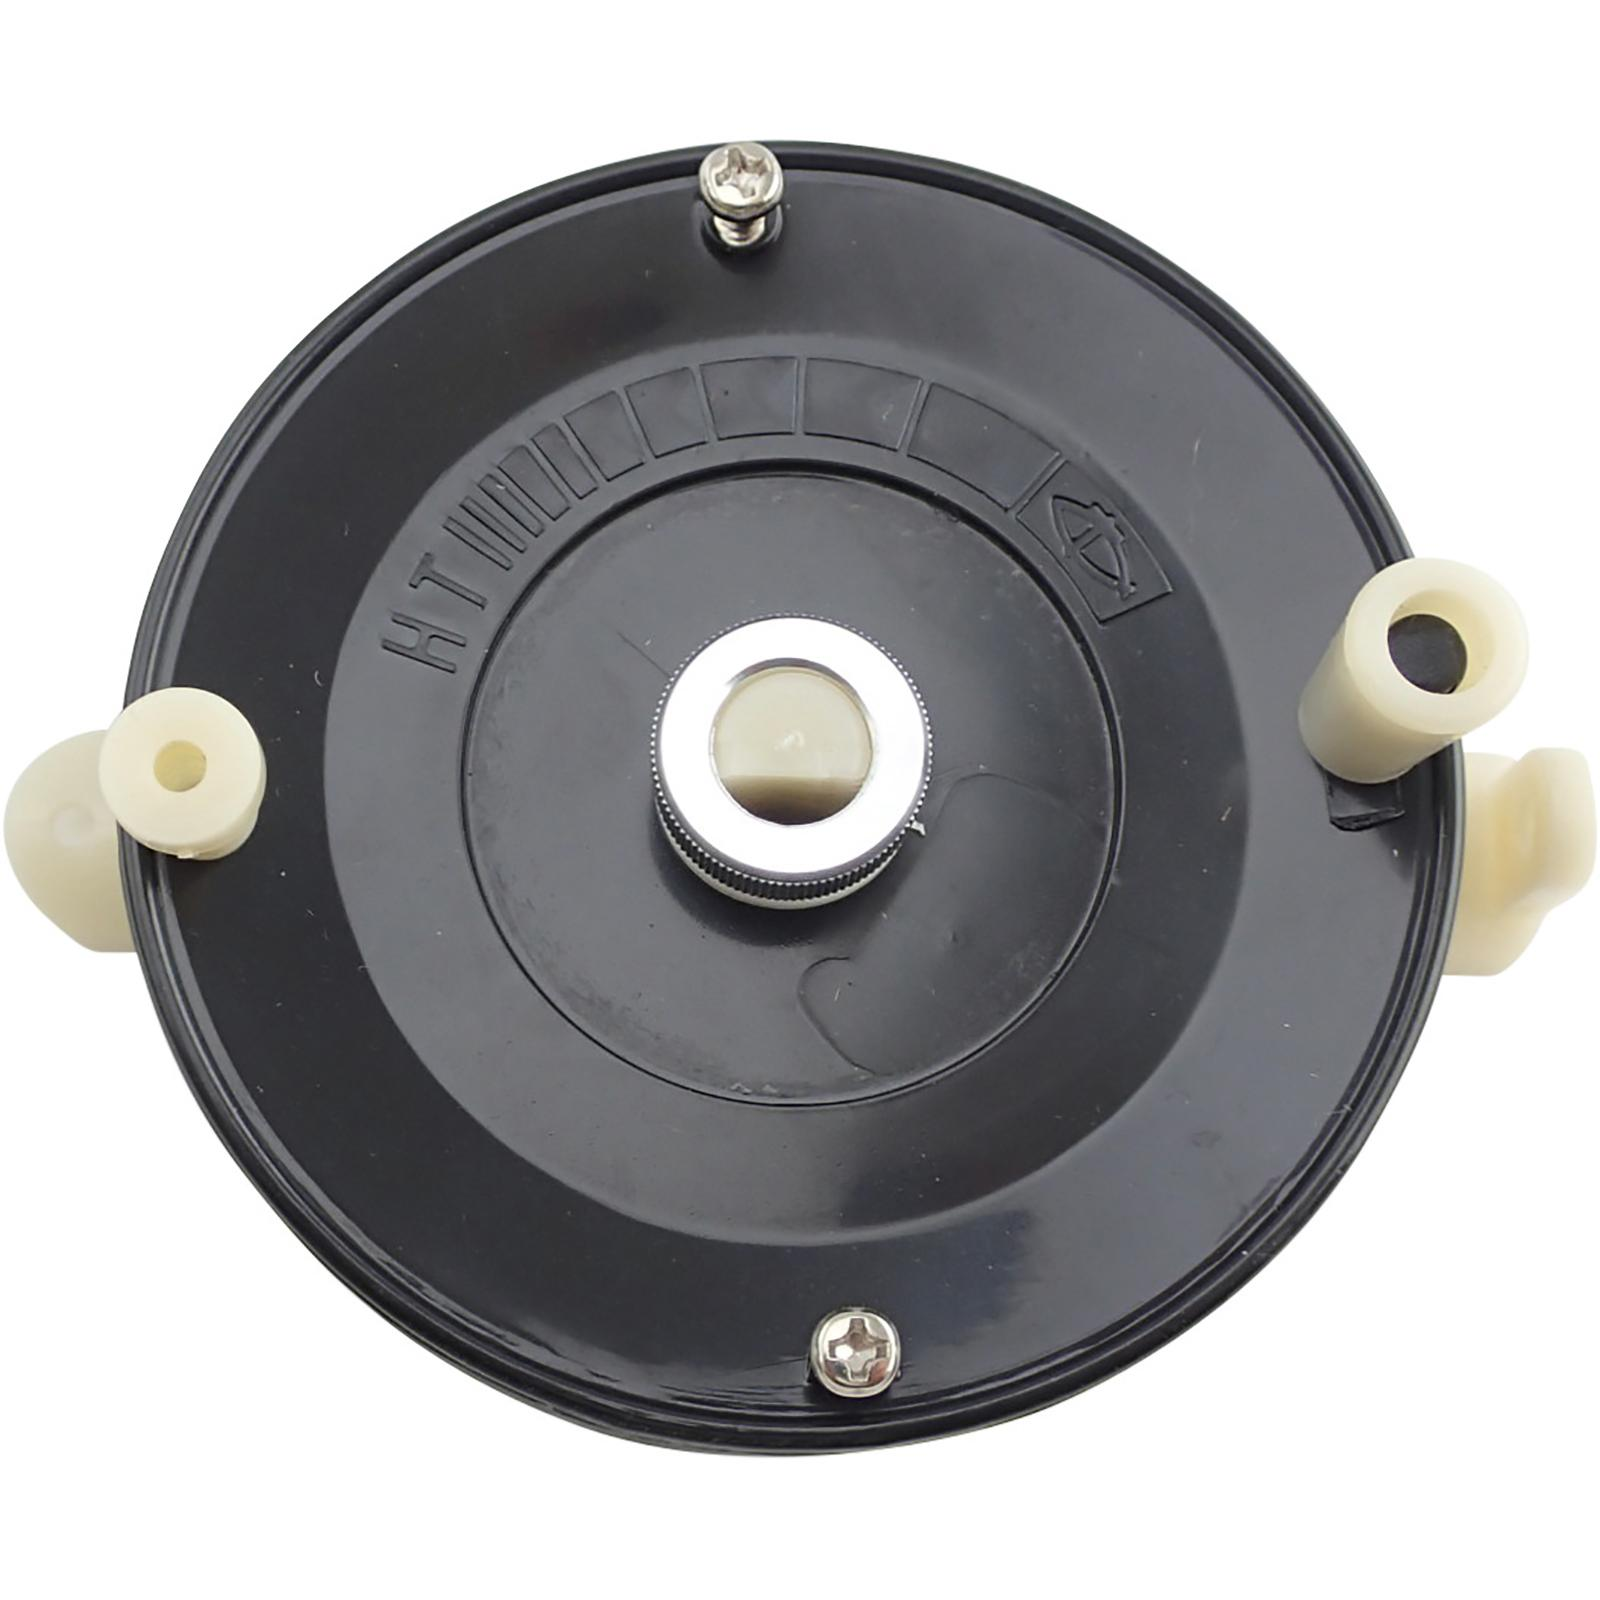 HT Enterprises Little Jigger Ice Reel